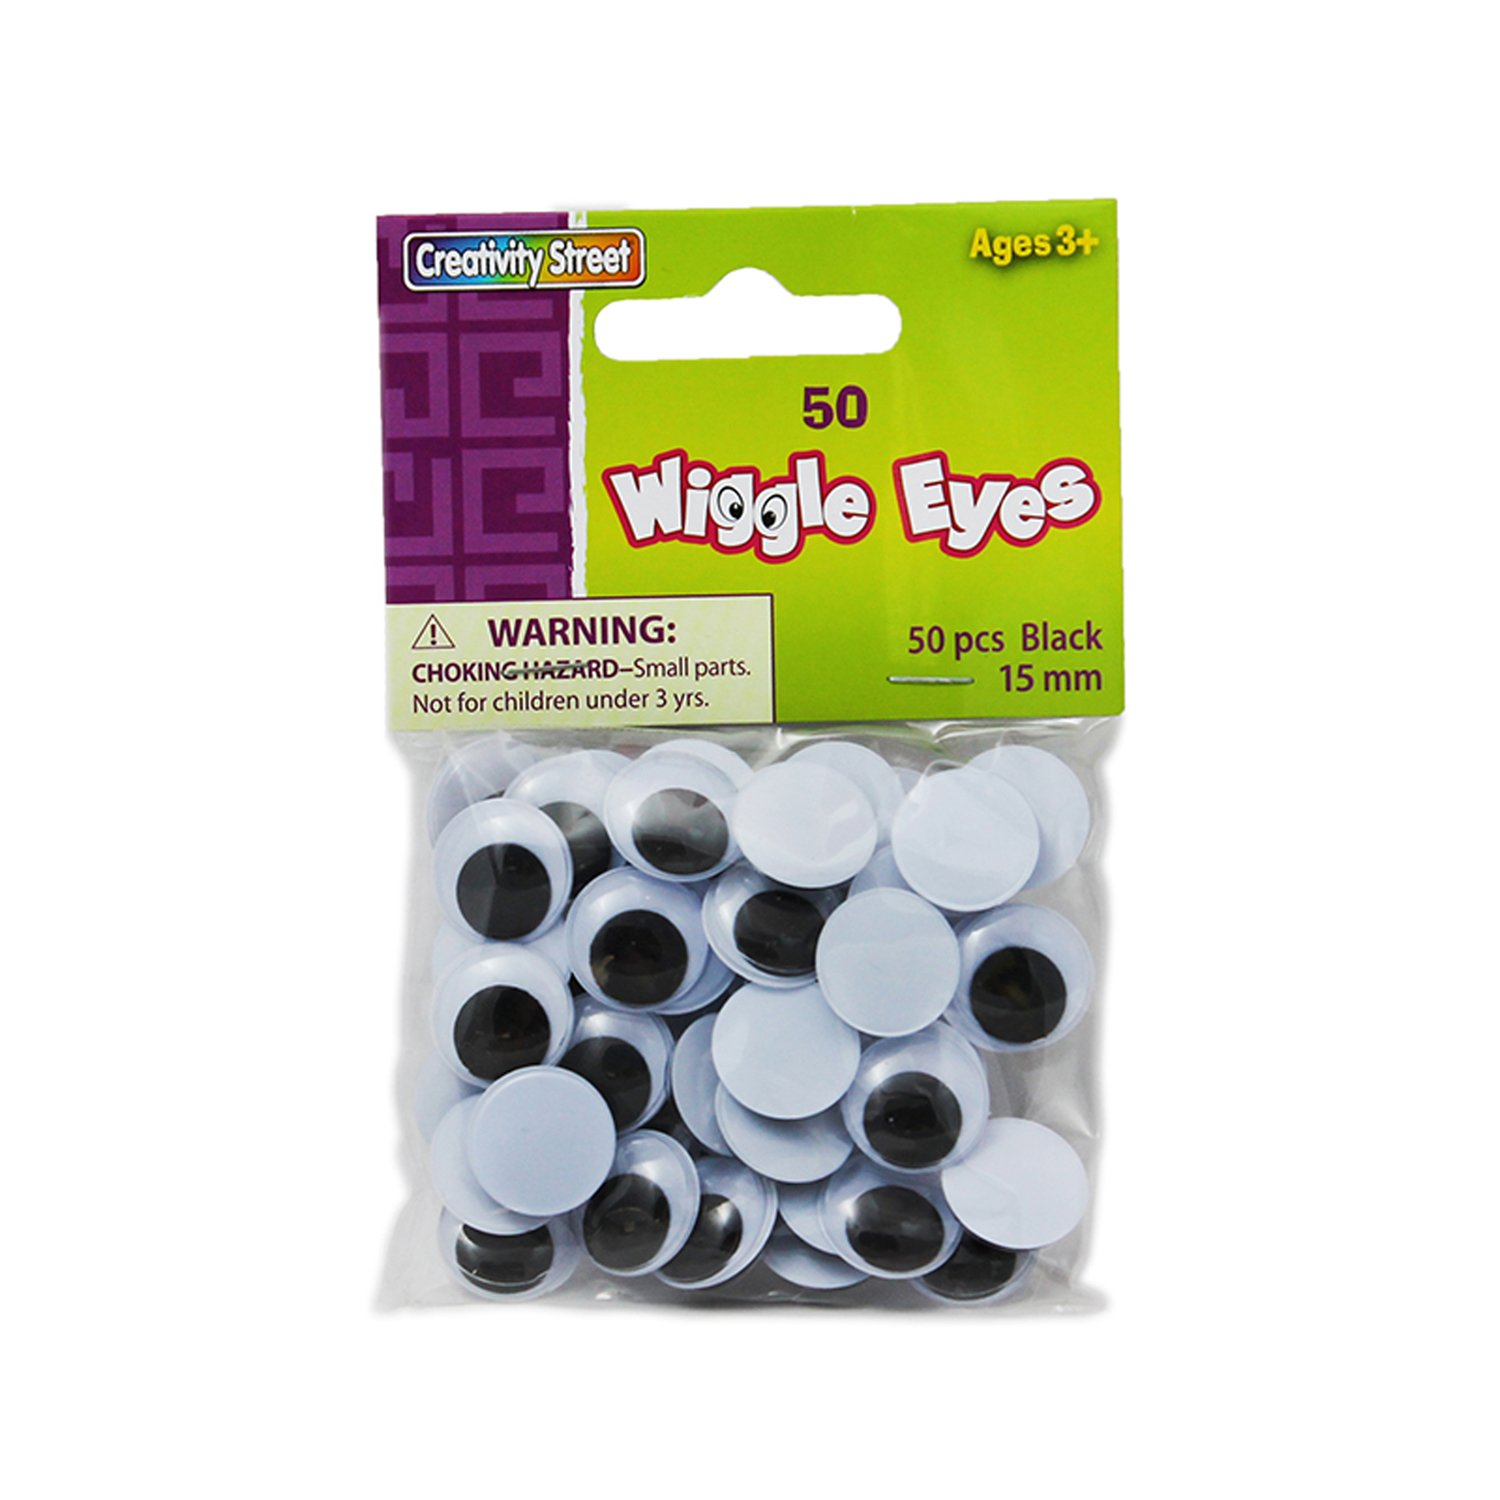 Creativity Street Wiggle Eyes, Black, 15 mm, 50 Per Pack, 12 Packs by Chenille Kraft